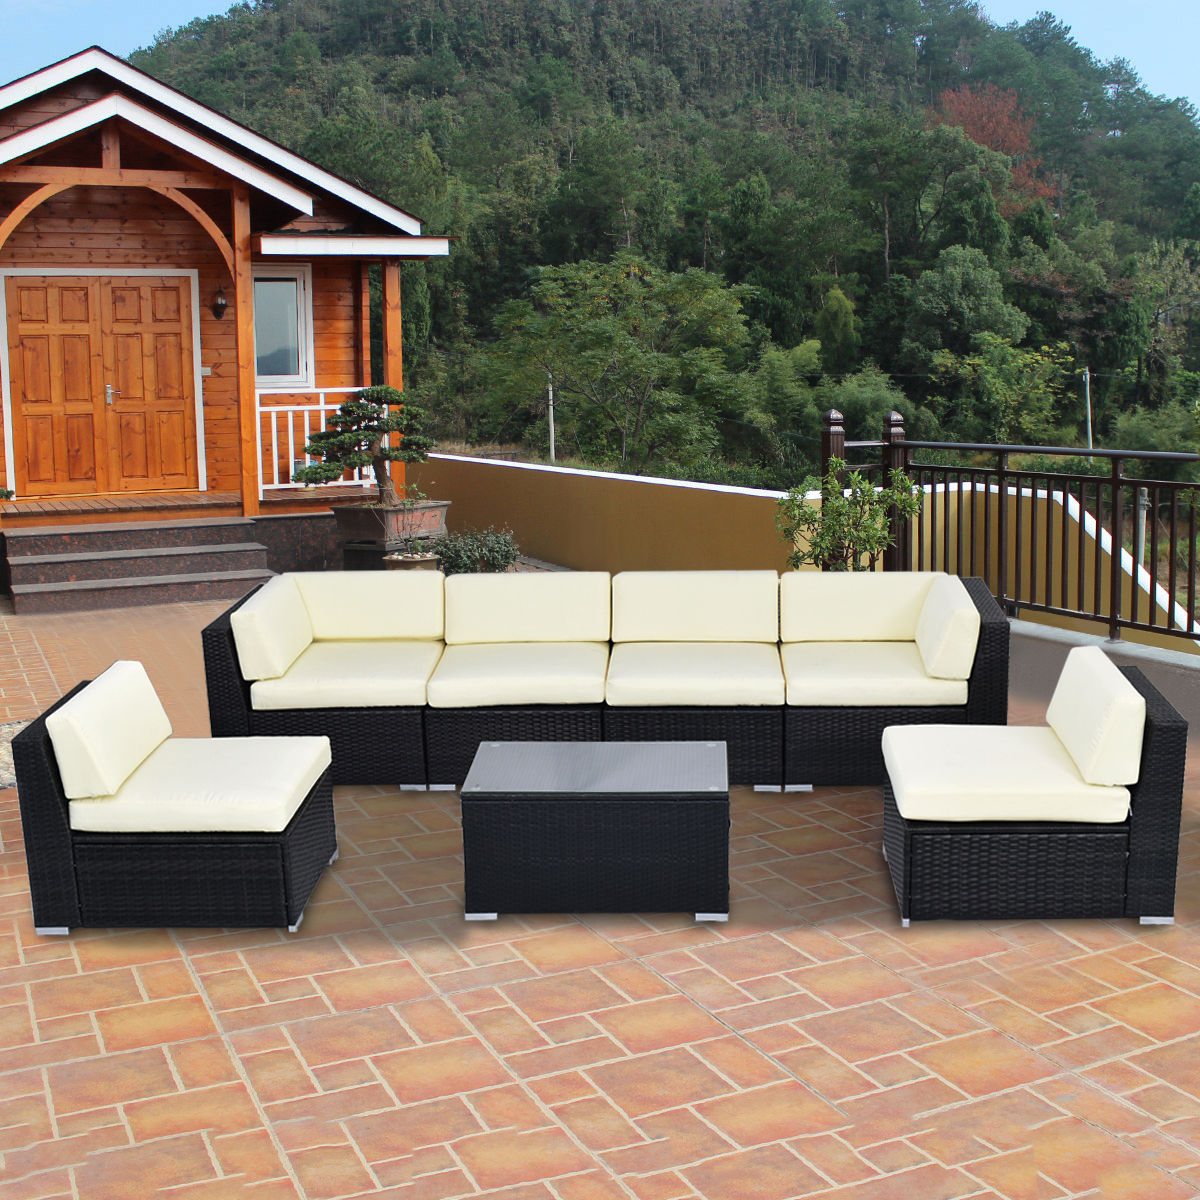 Costway 7 PCS Outdoor Patio Sofa Set Sectional Furniture Black PE Rattan  Deck Couch